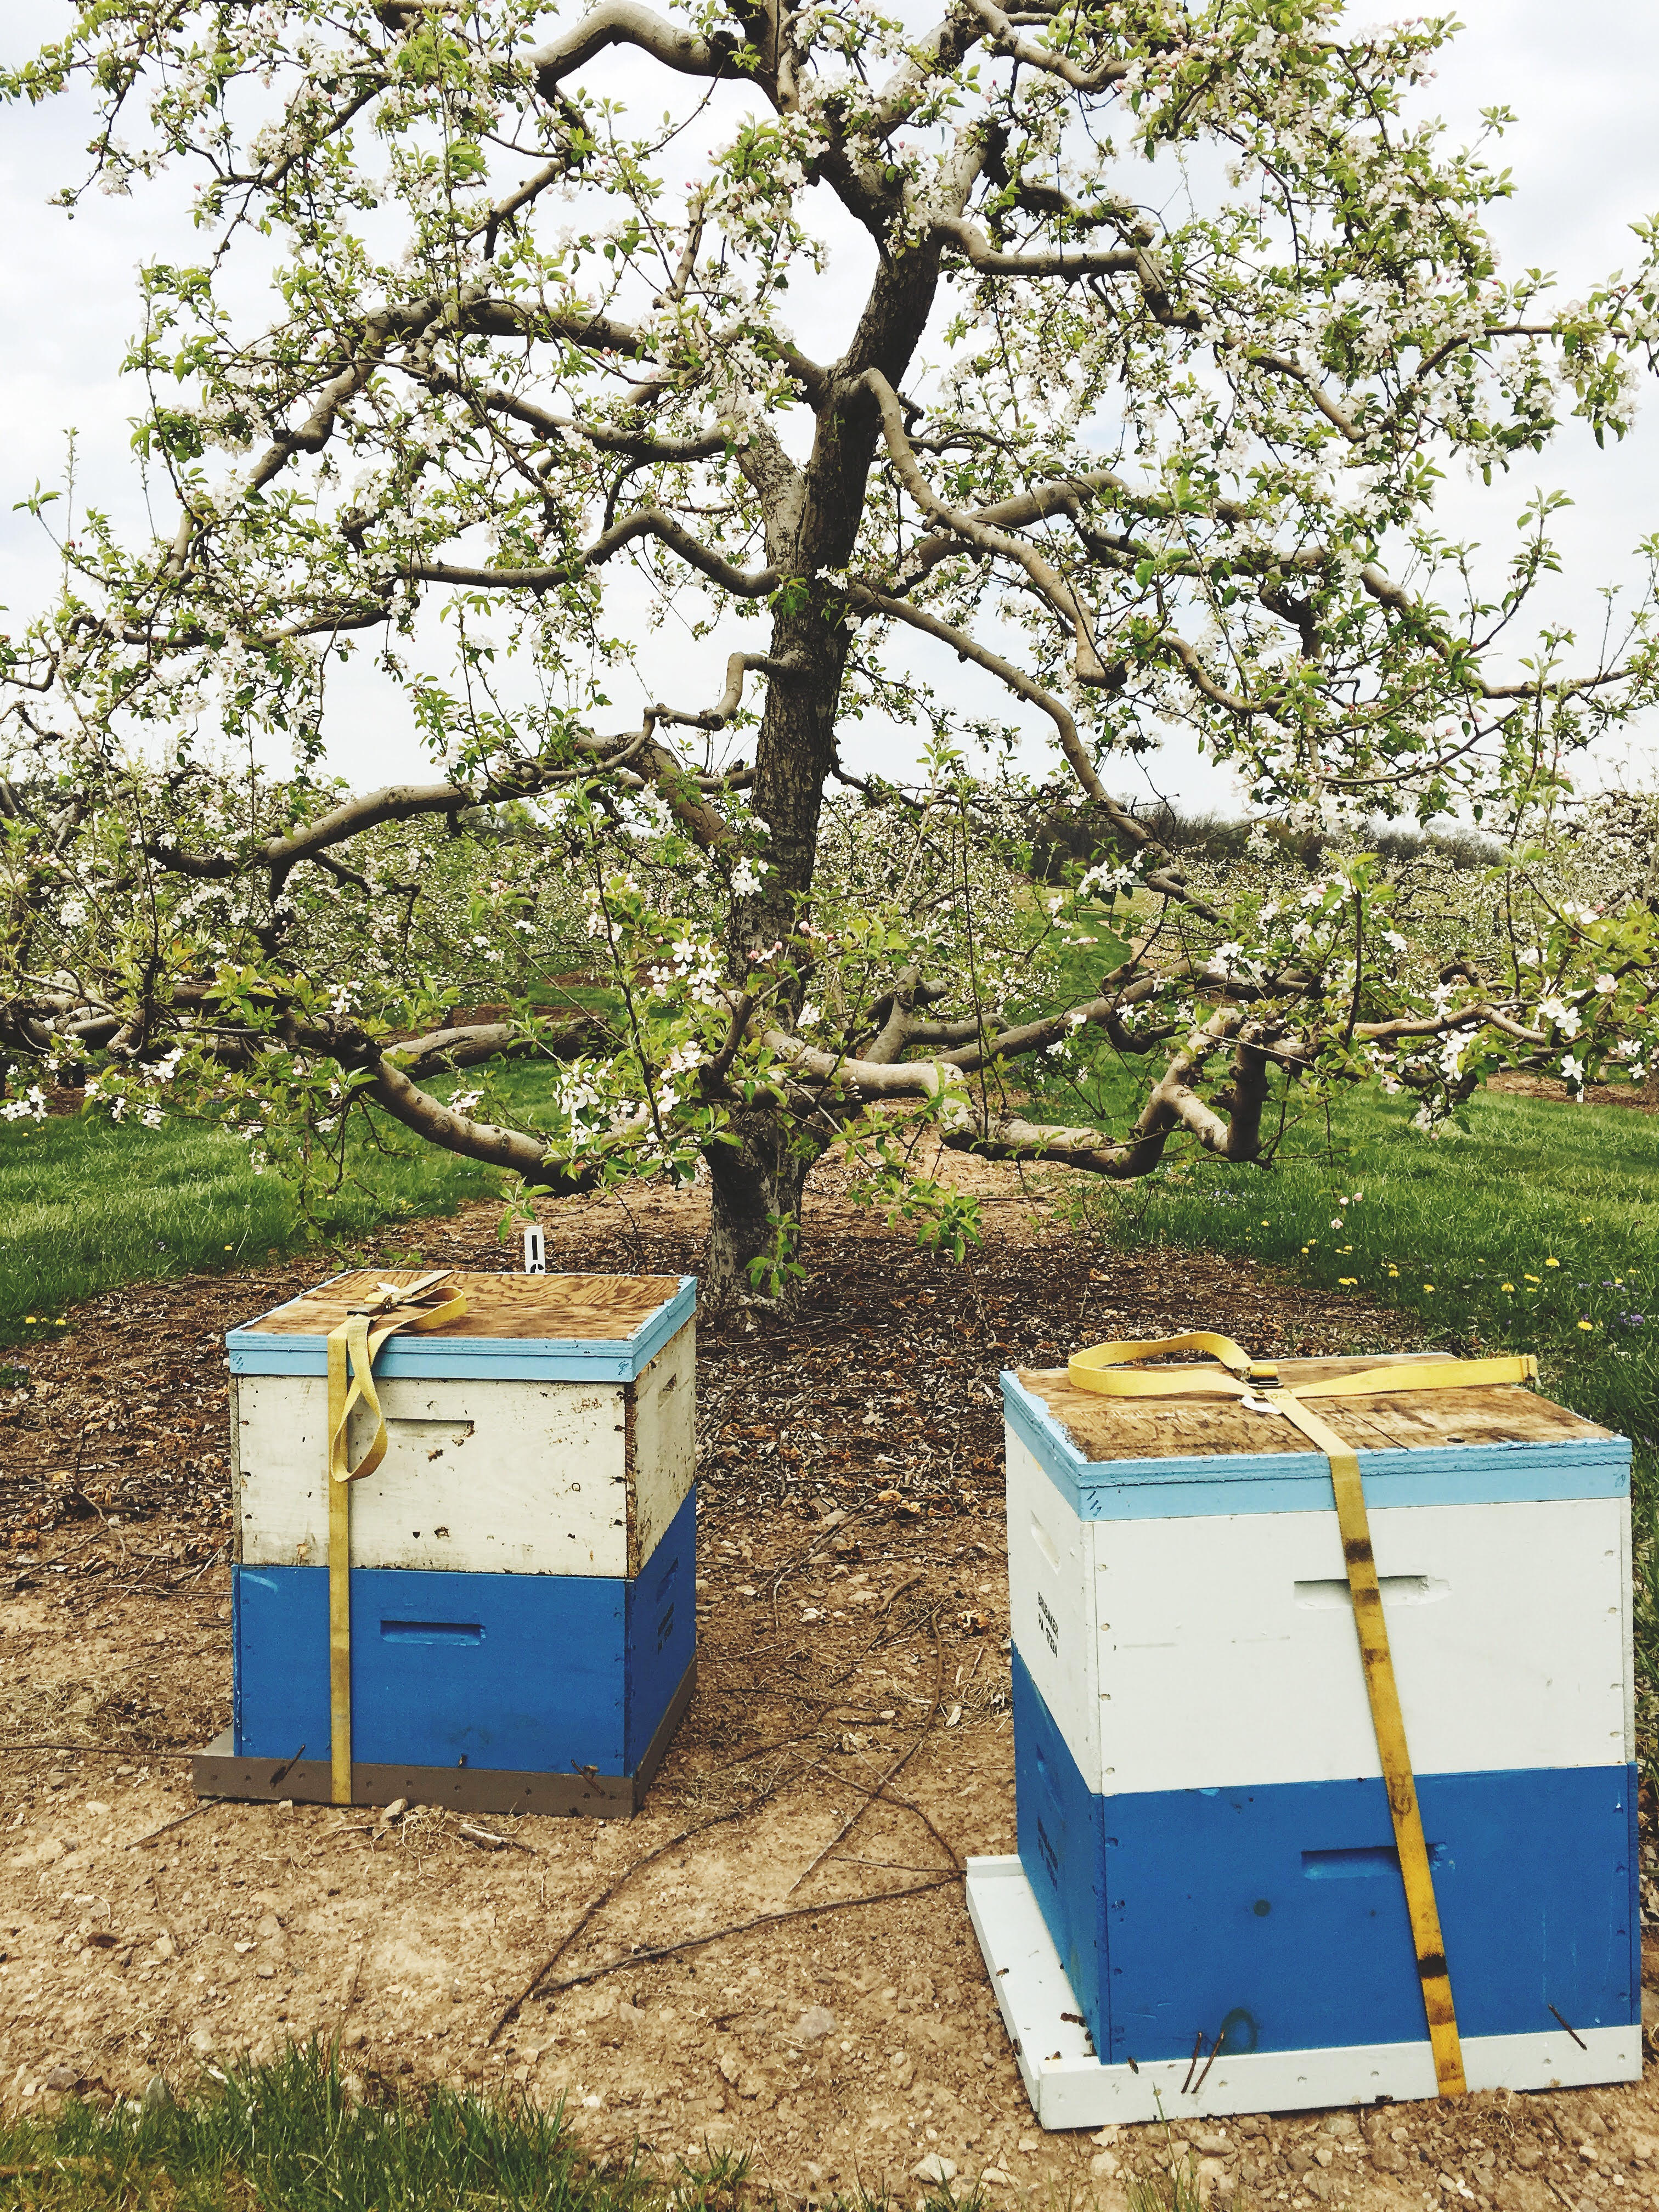 Bee boxes in the orchard during pollination season, Biglerville, PA